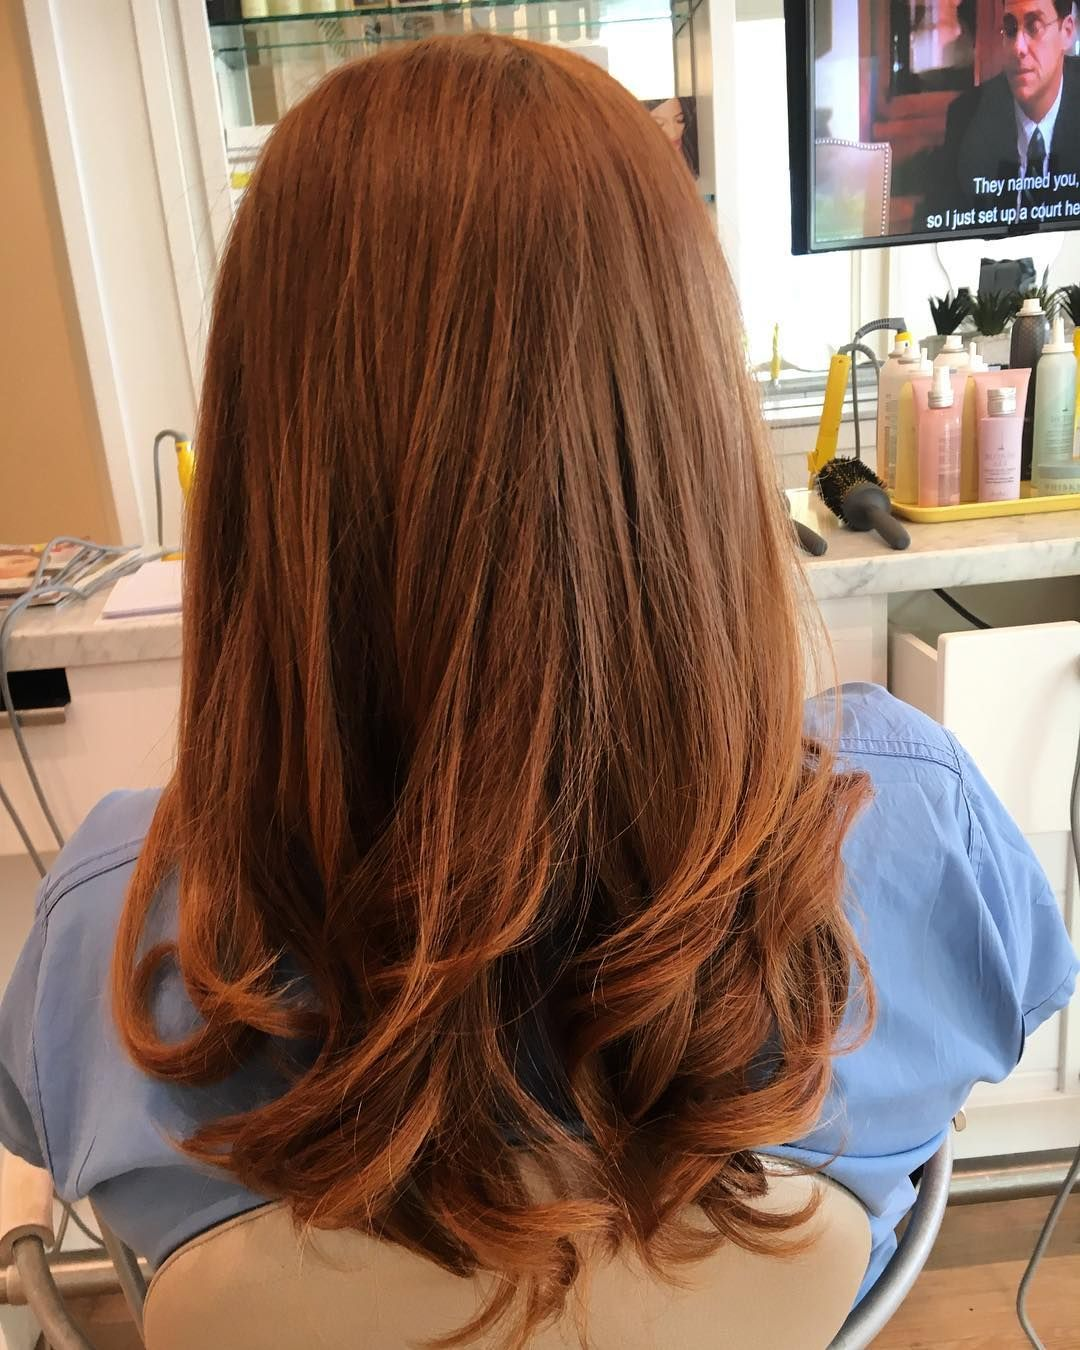 How To Blow Dry Your Hair For Volume Blow Dry Hair Dry Curly Hair Dry Hair Volume